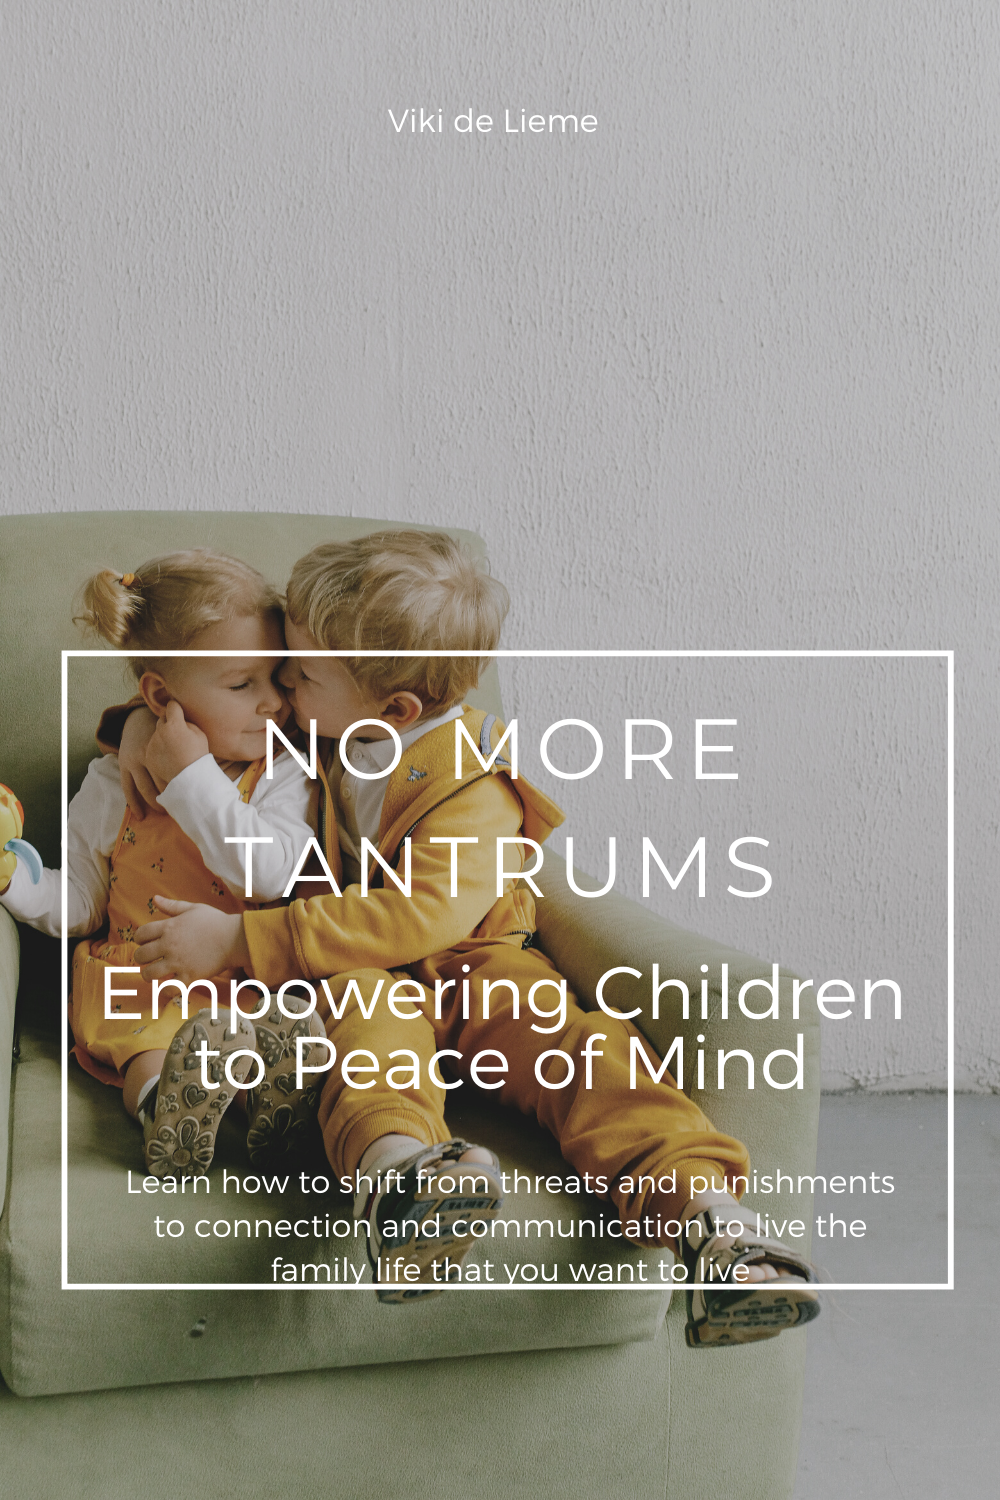 "If you've had enough of the disconnection, the pain, the fights, and the power struggles, and you want to push the ""reset"" button on your parenting - this book is for you. #tantrums #parenting #peacefulparentingbook #positiveparentingbook #parentingbook #parentinghelp"